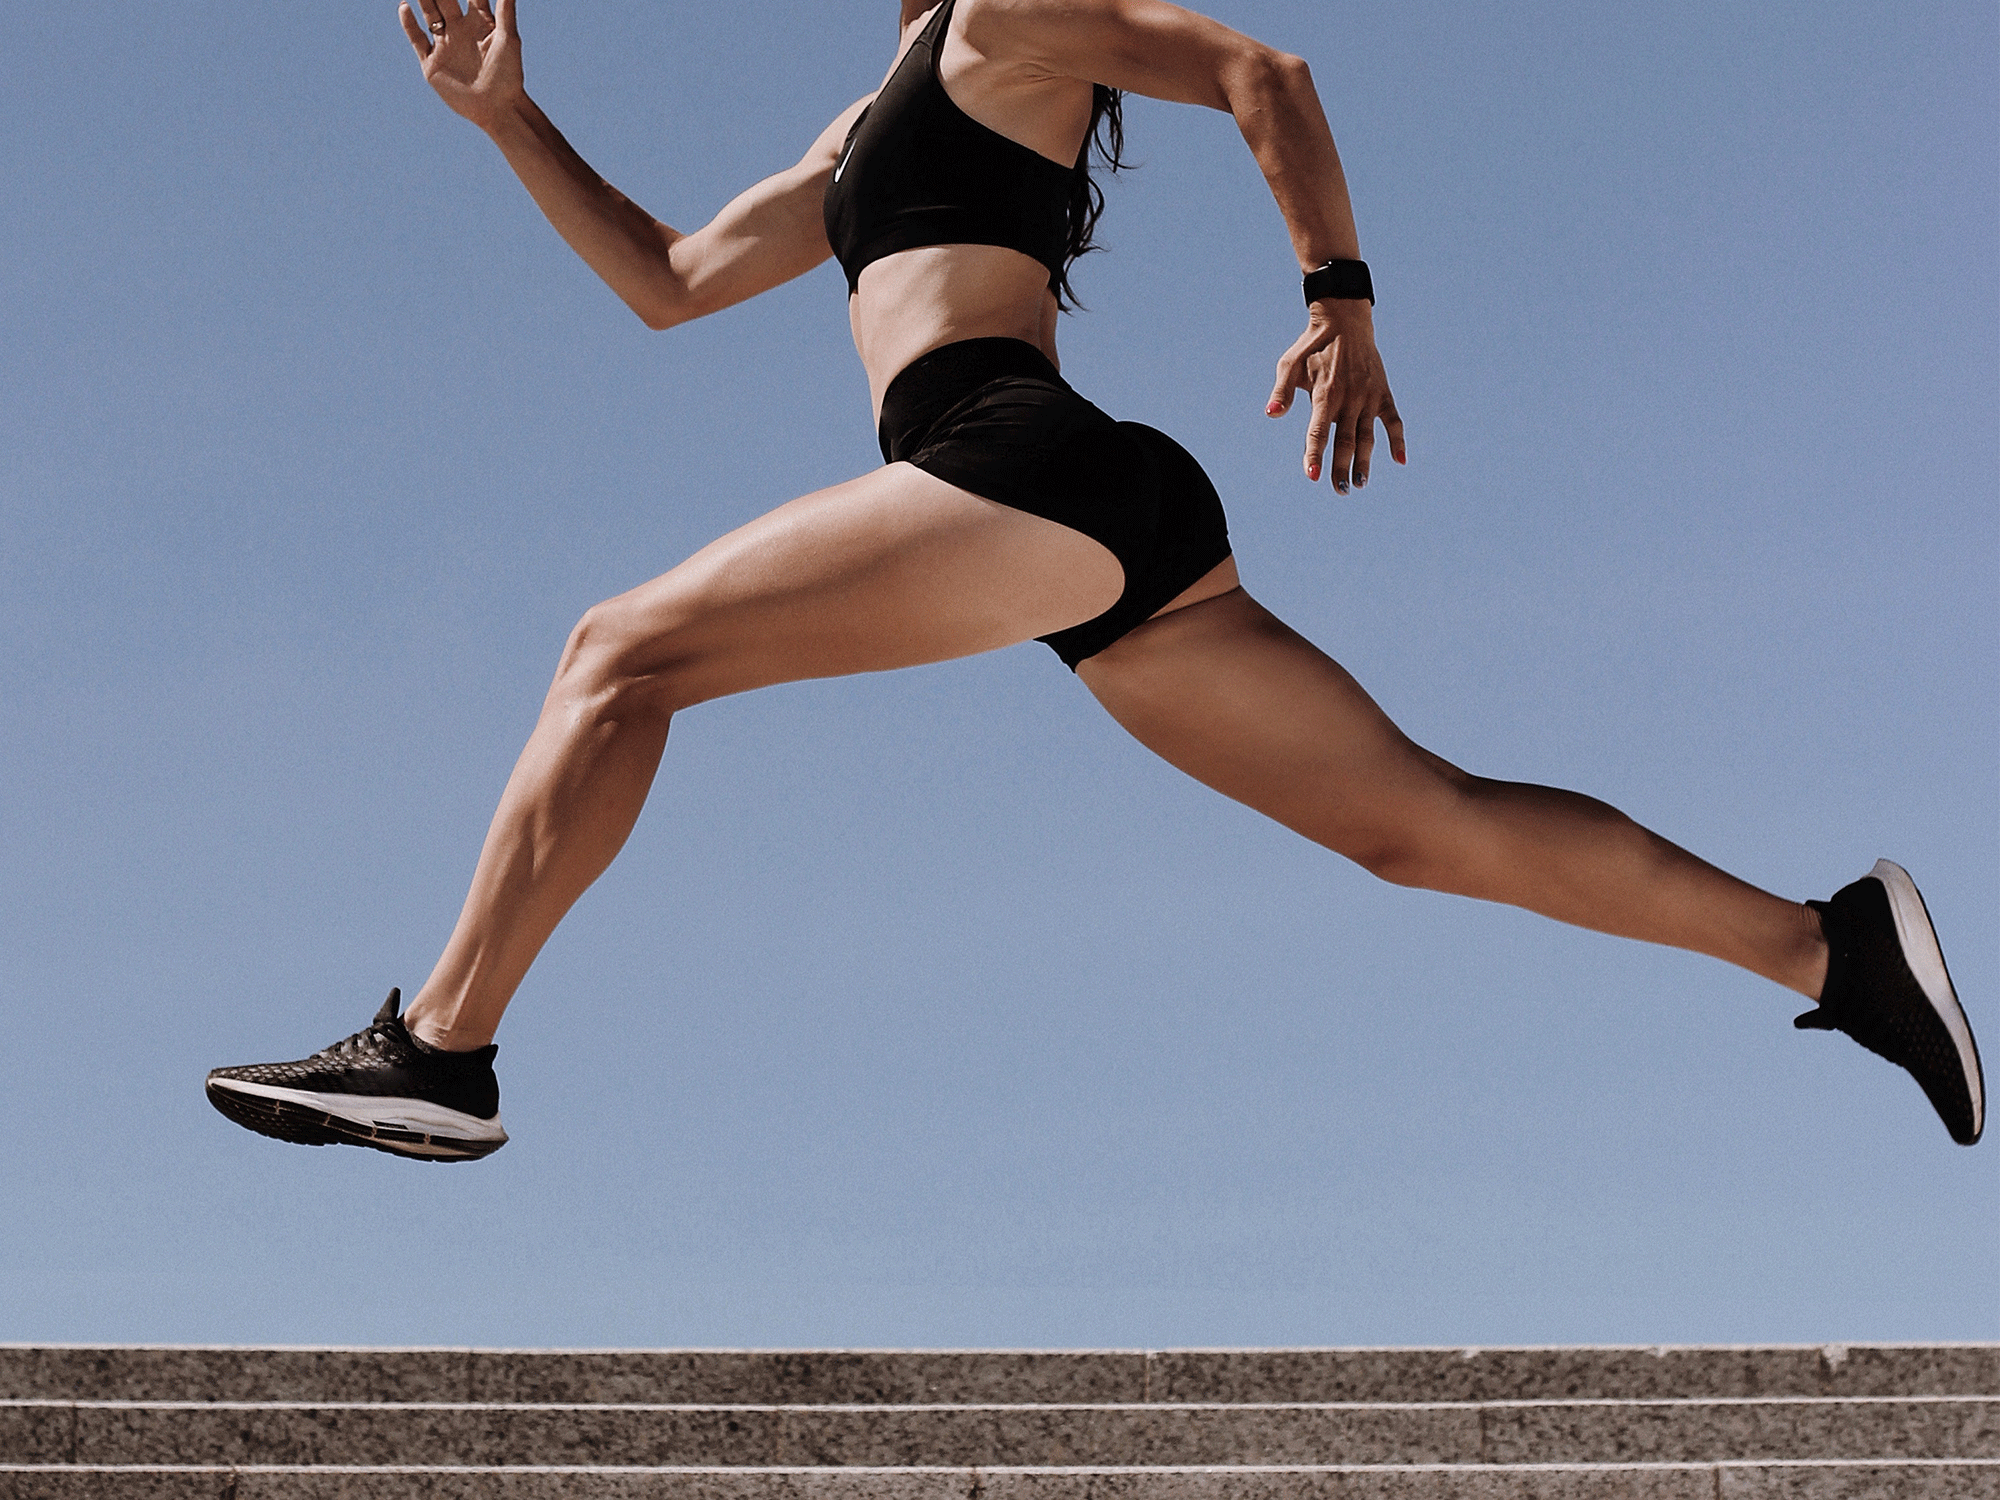 Athletic fit woman sprinting